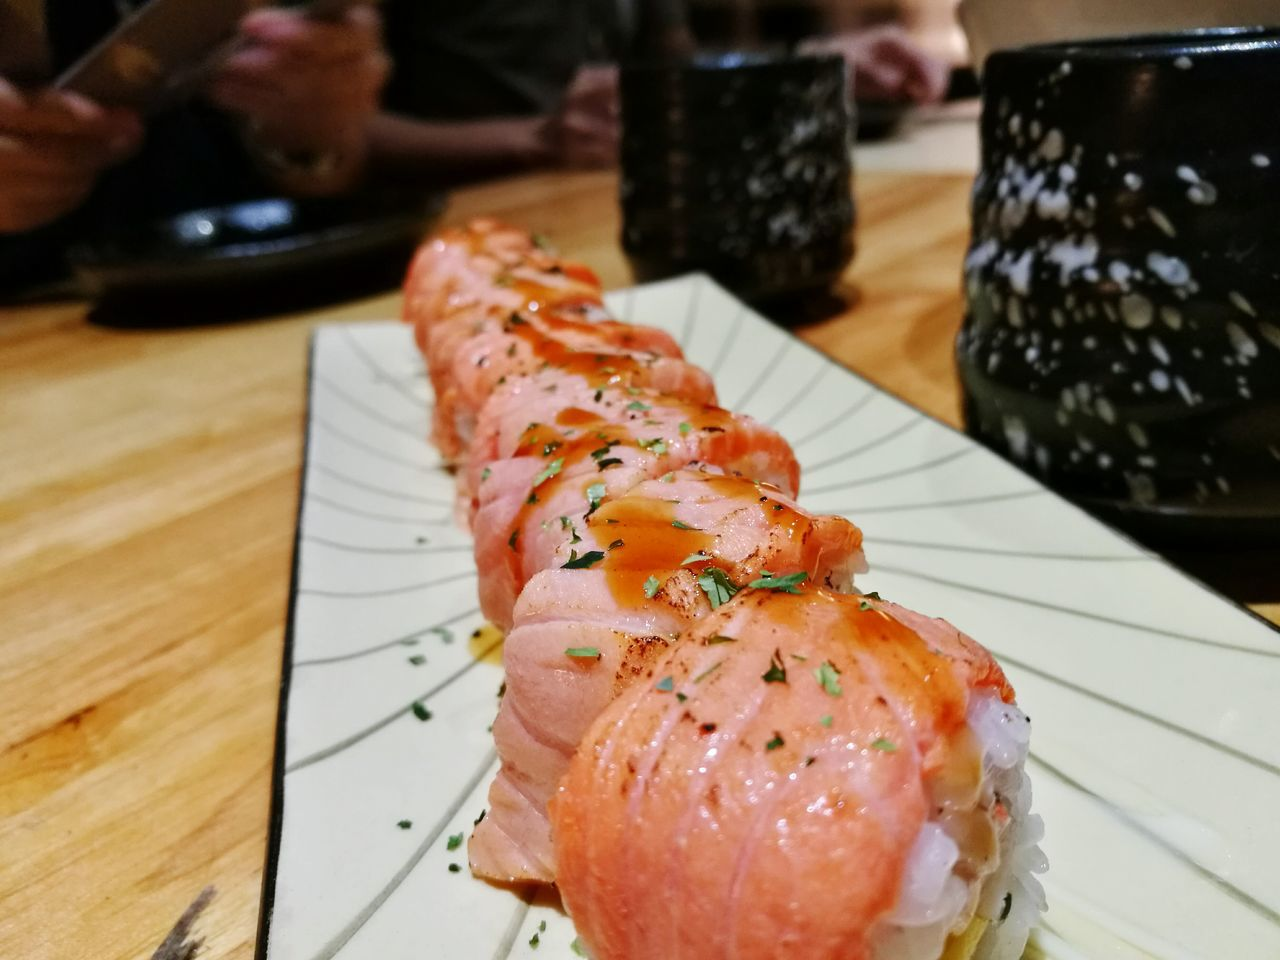 Sushizento Zento Ipohfood Food Enjoying Life First Eyeem Photo Life Salmon Sushi Sushilover HuaweiP9